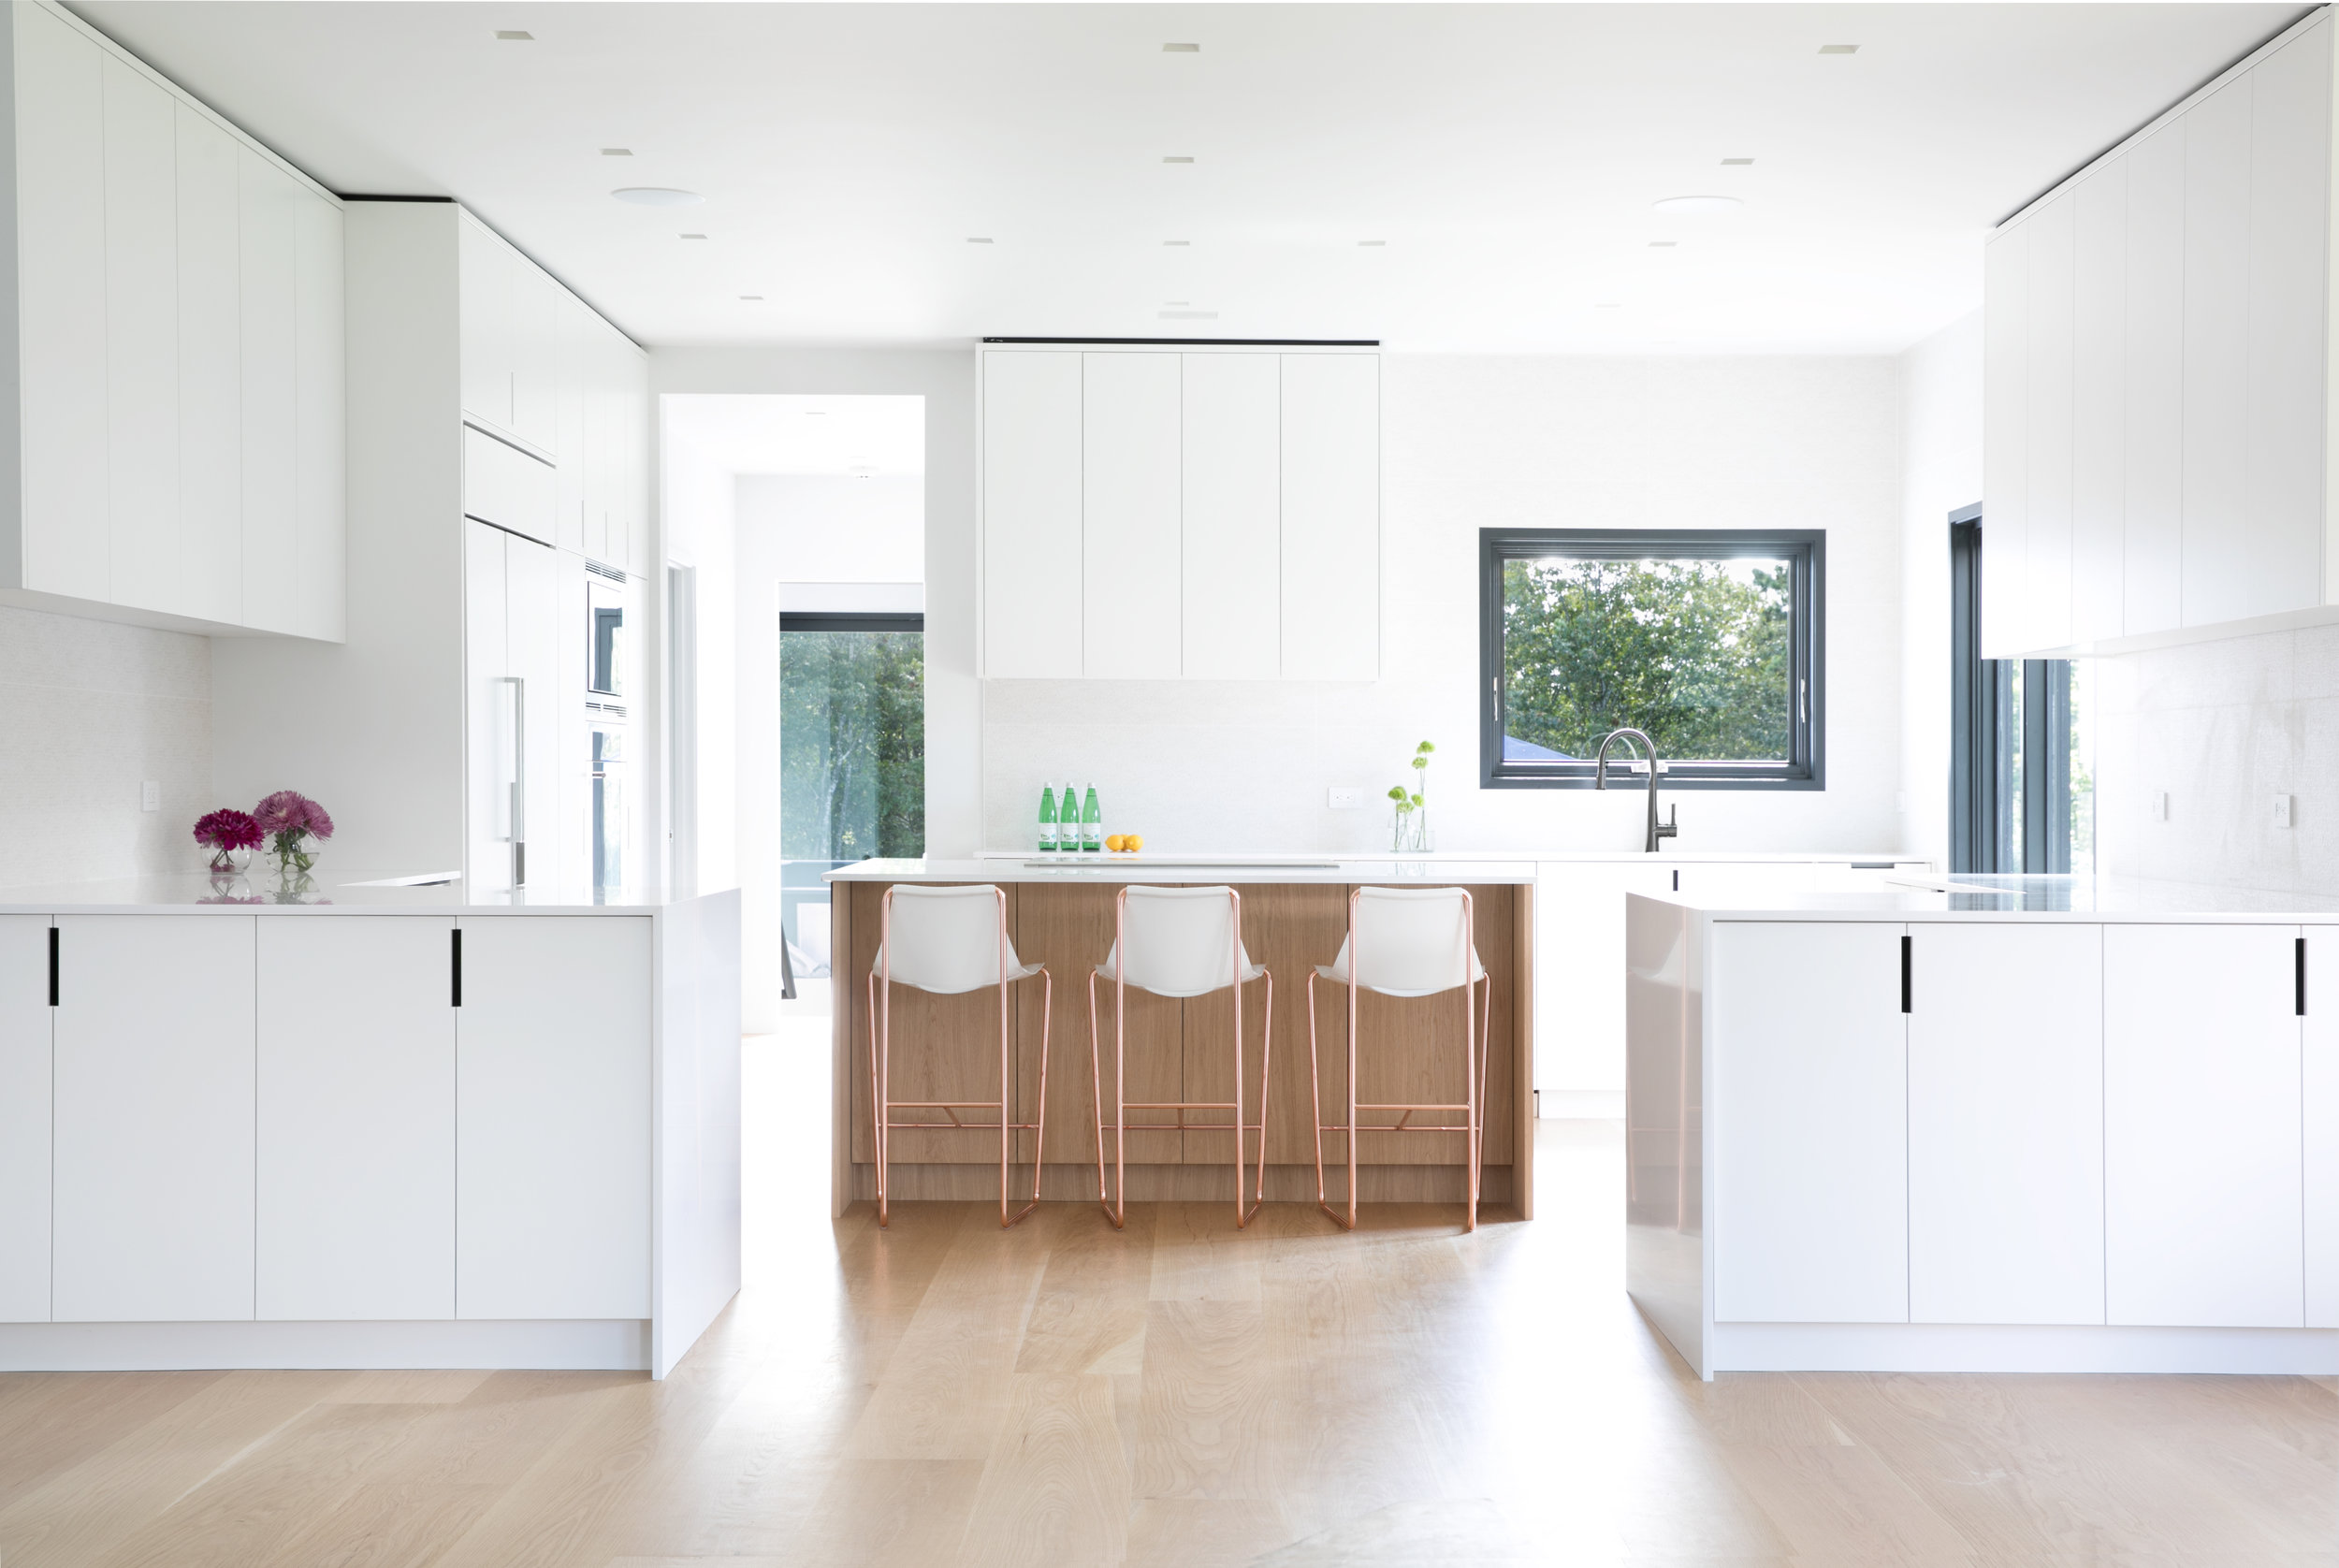 All White Kitchen Design with Wood Accents